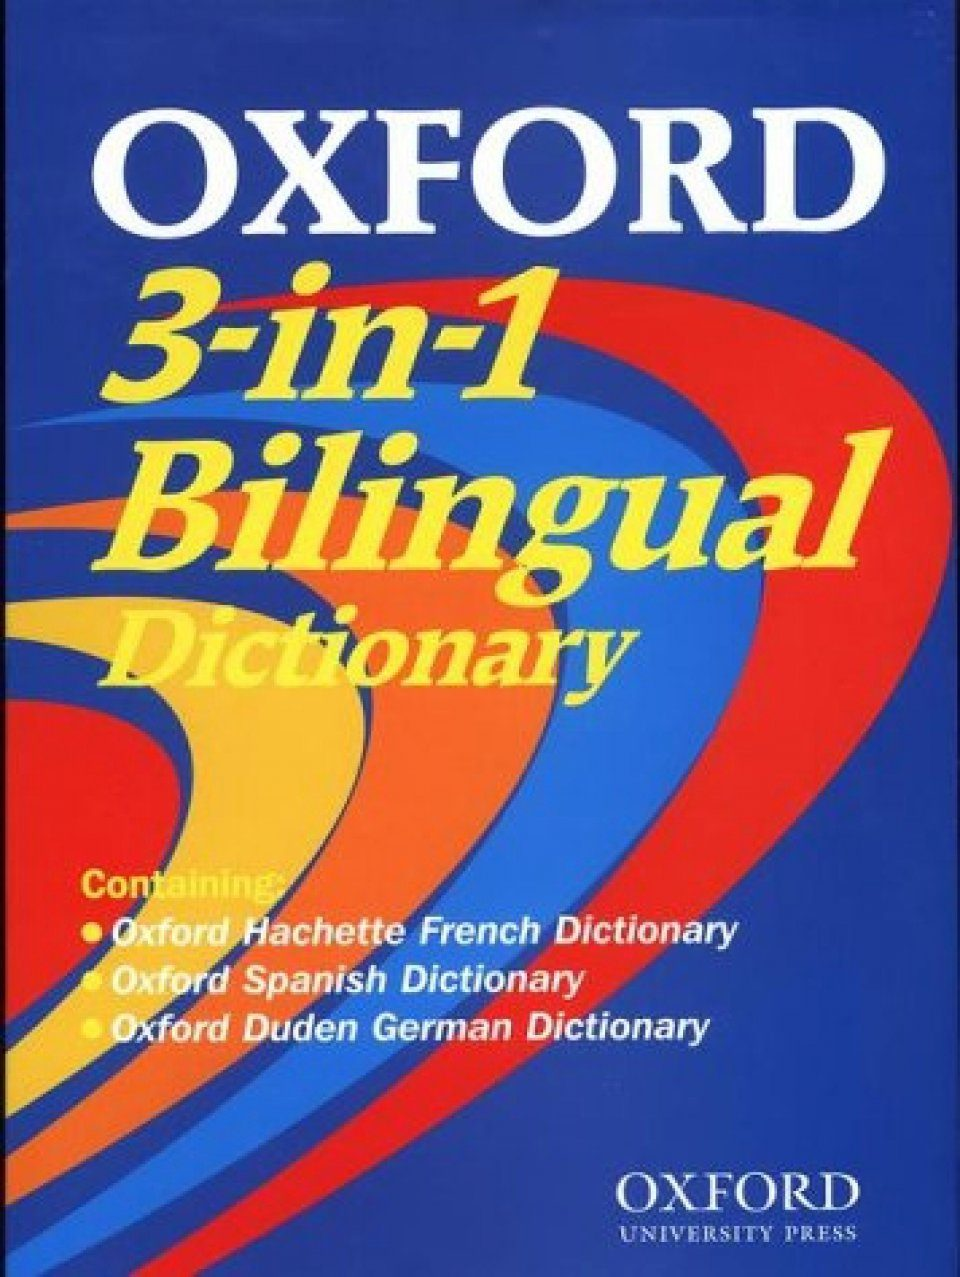 Oxford 3-in-1 Bilingual Dictionary (Windows/Macintosh CD-ROM)